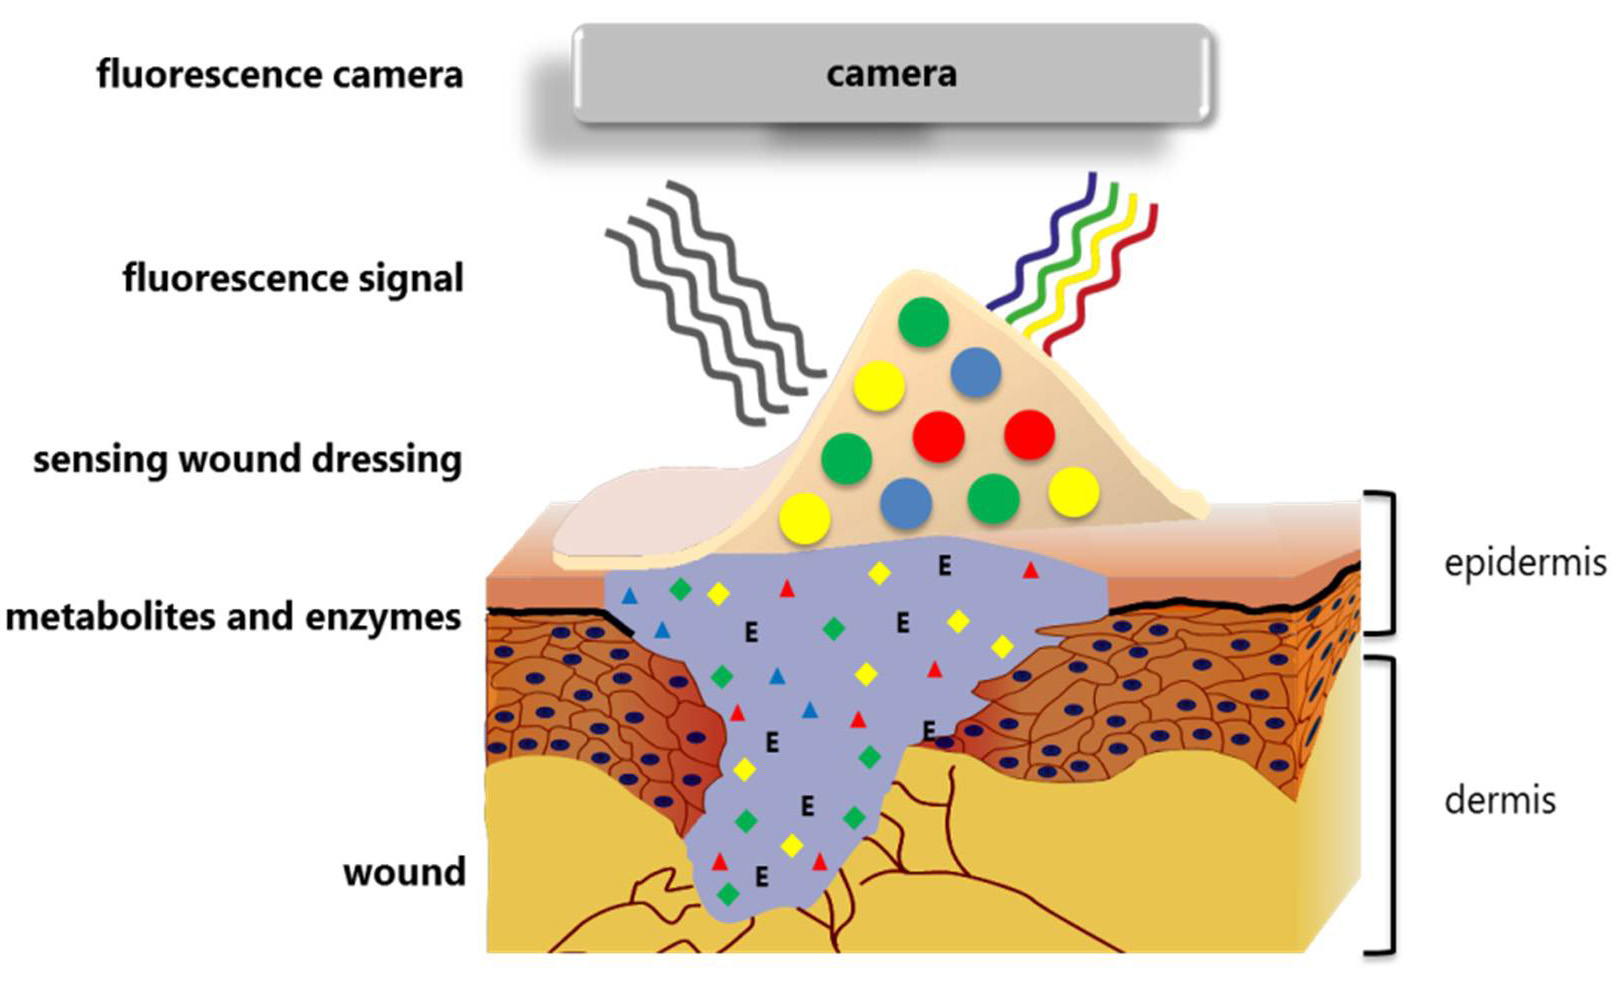 hight resolution of figure 1 the design and function of the smart wound dressing the biosensors in the dressing can detect key parameters for wound healing like neutrophil